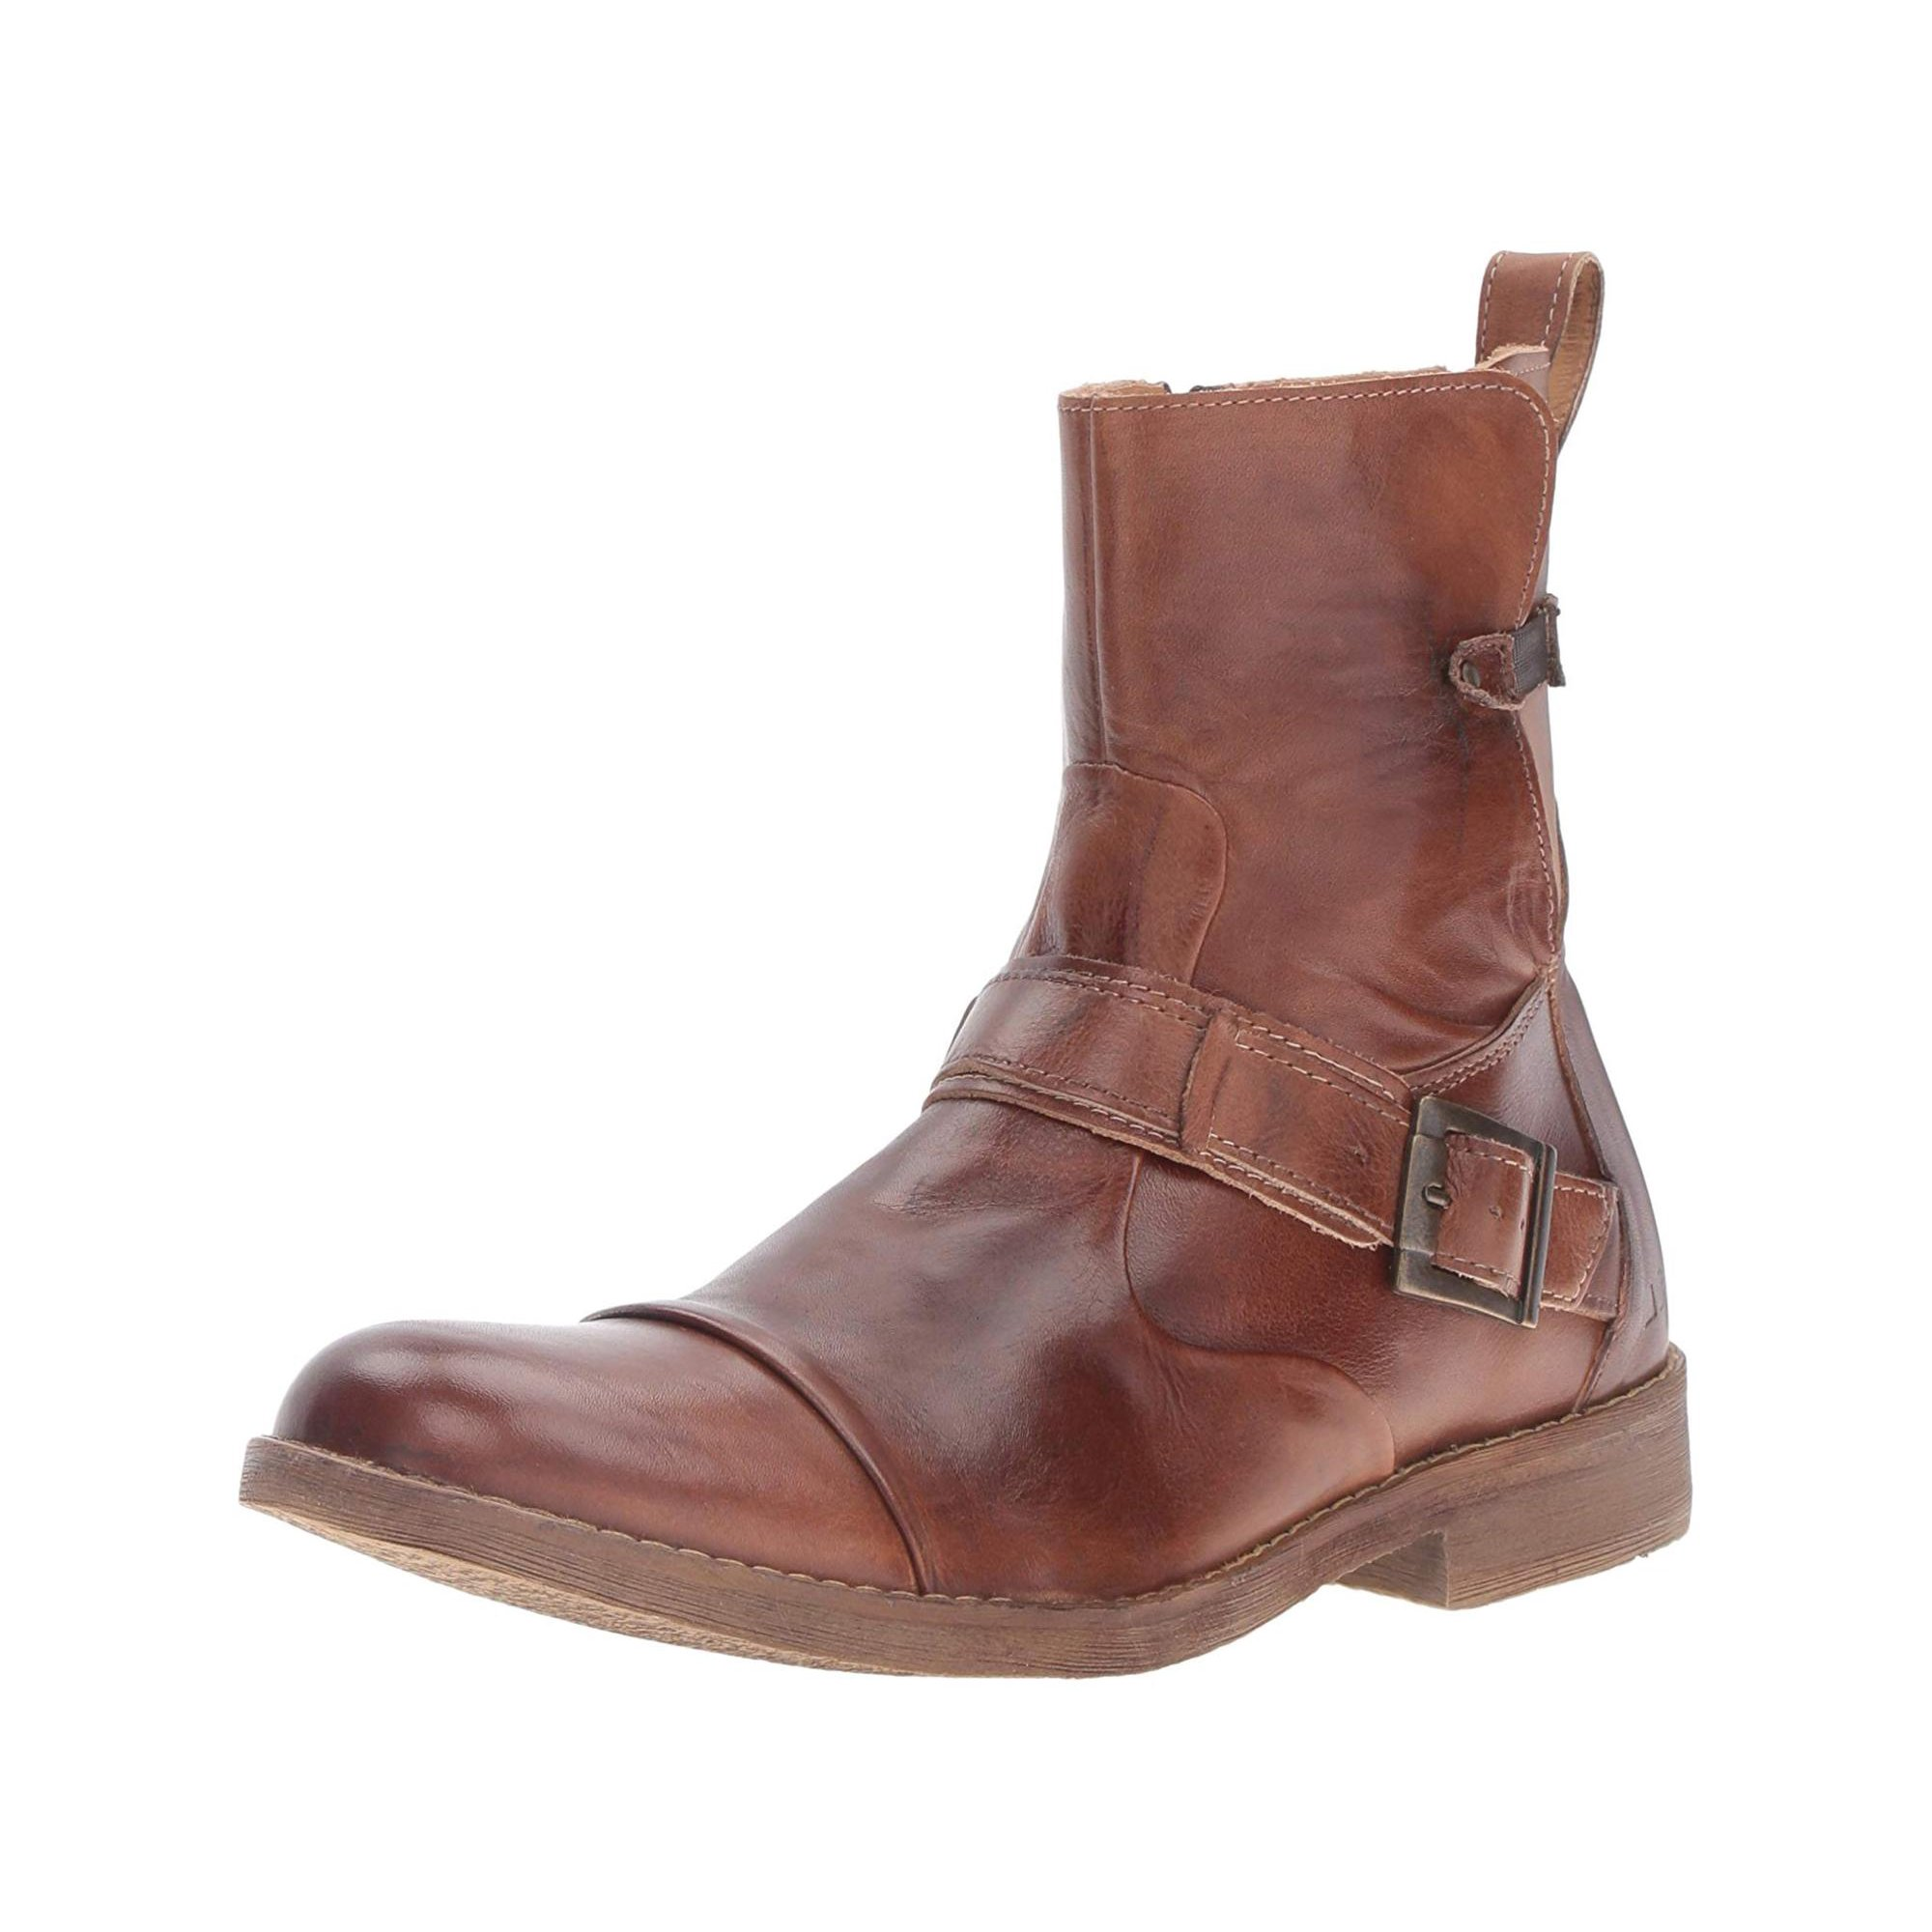 a07850f7952 Bed Stu Mens Jerry Closed Toe Ankle Fashion Boots | Walmart Canada